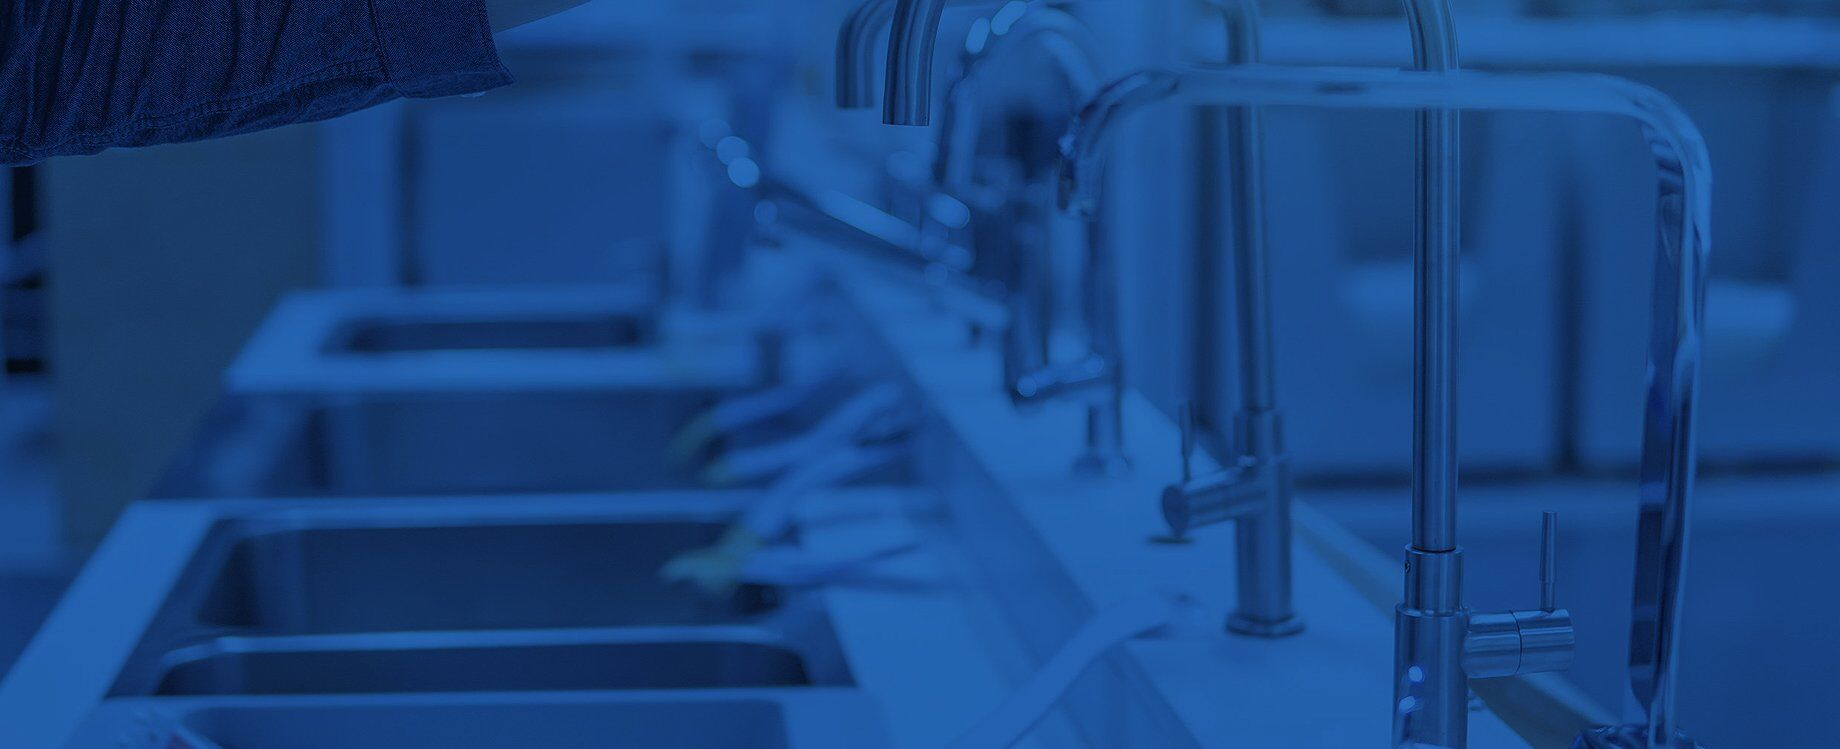 Water Treatment Background